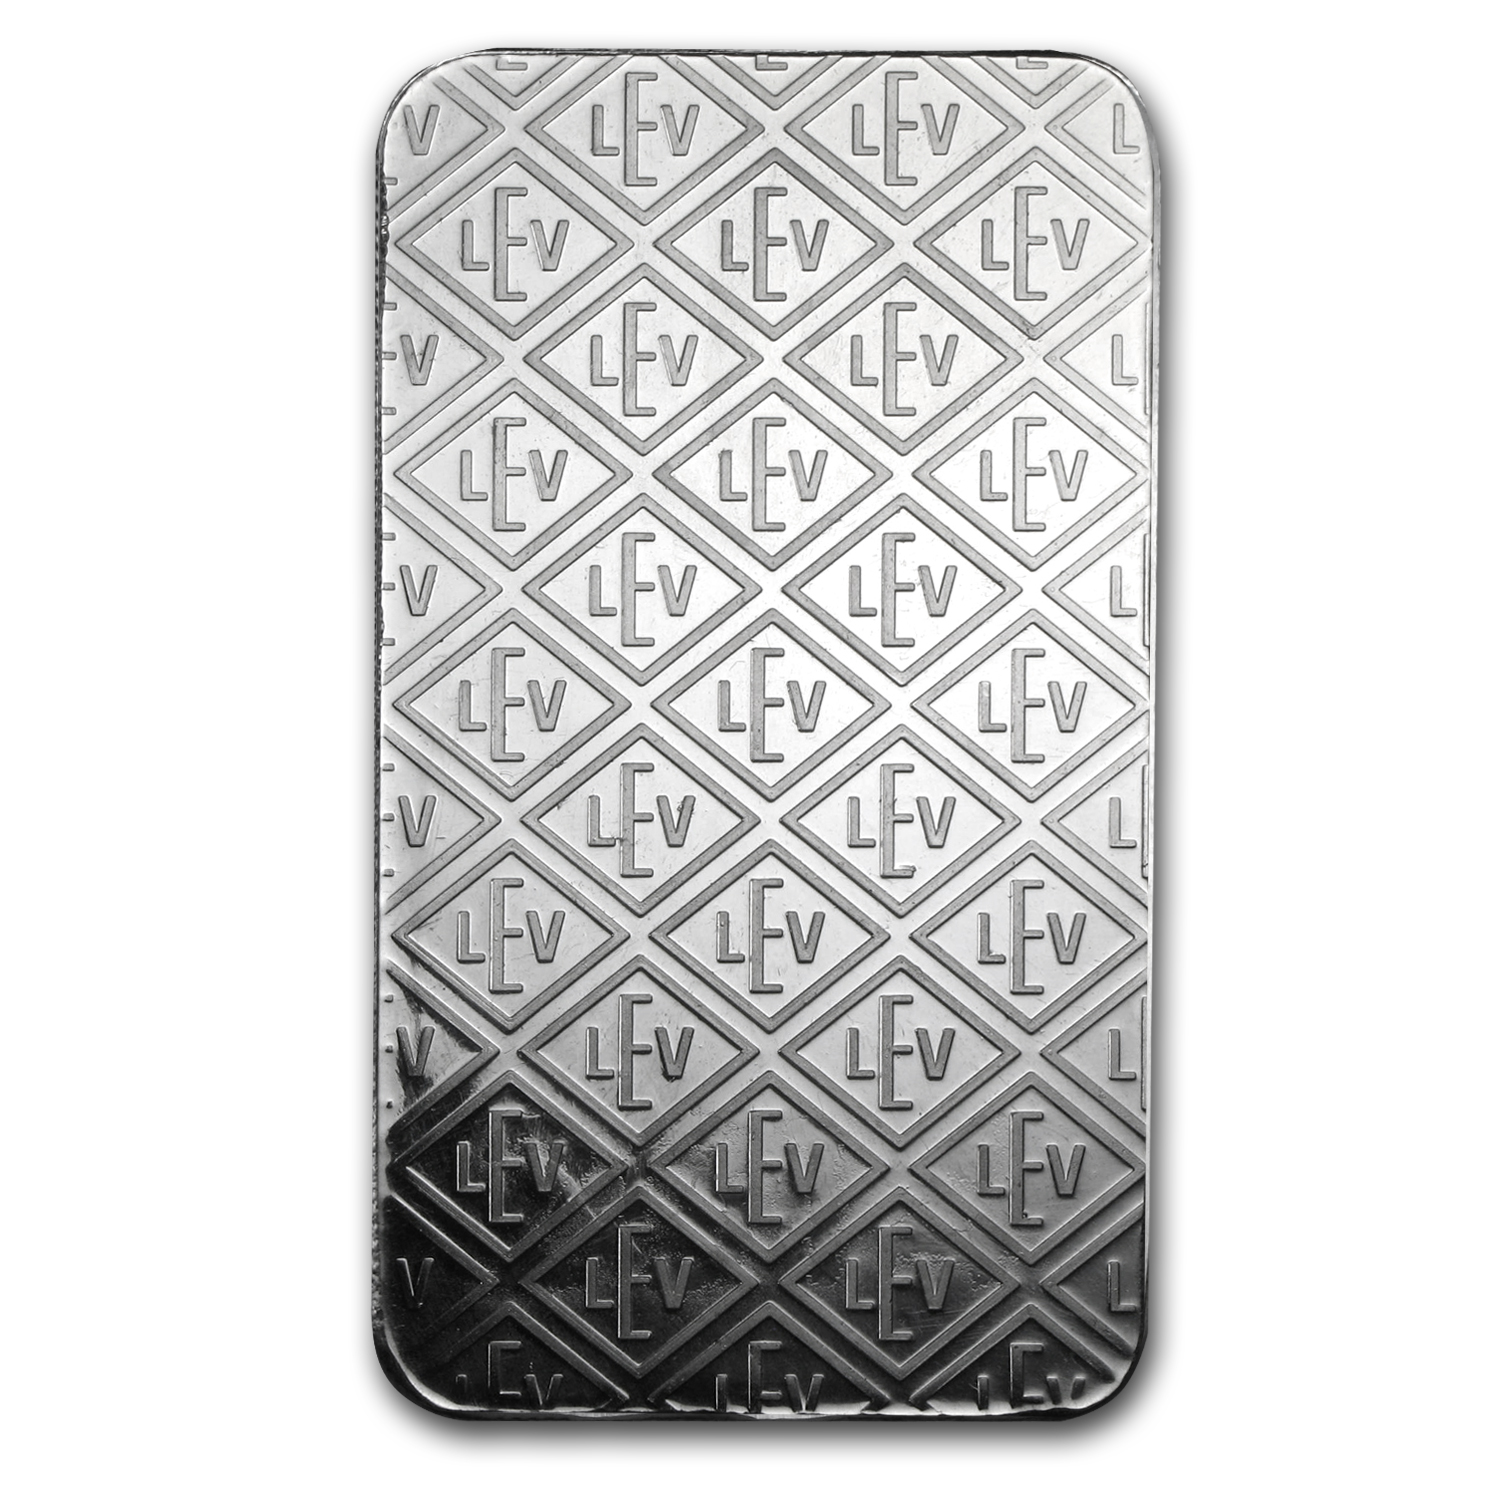 10 oz Silver Bars - Geiger (Security Line Series)